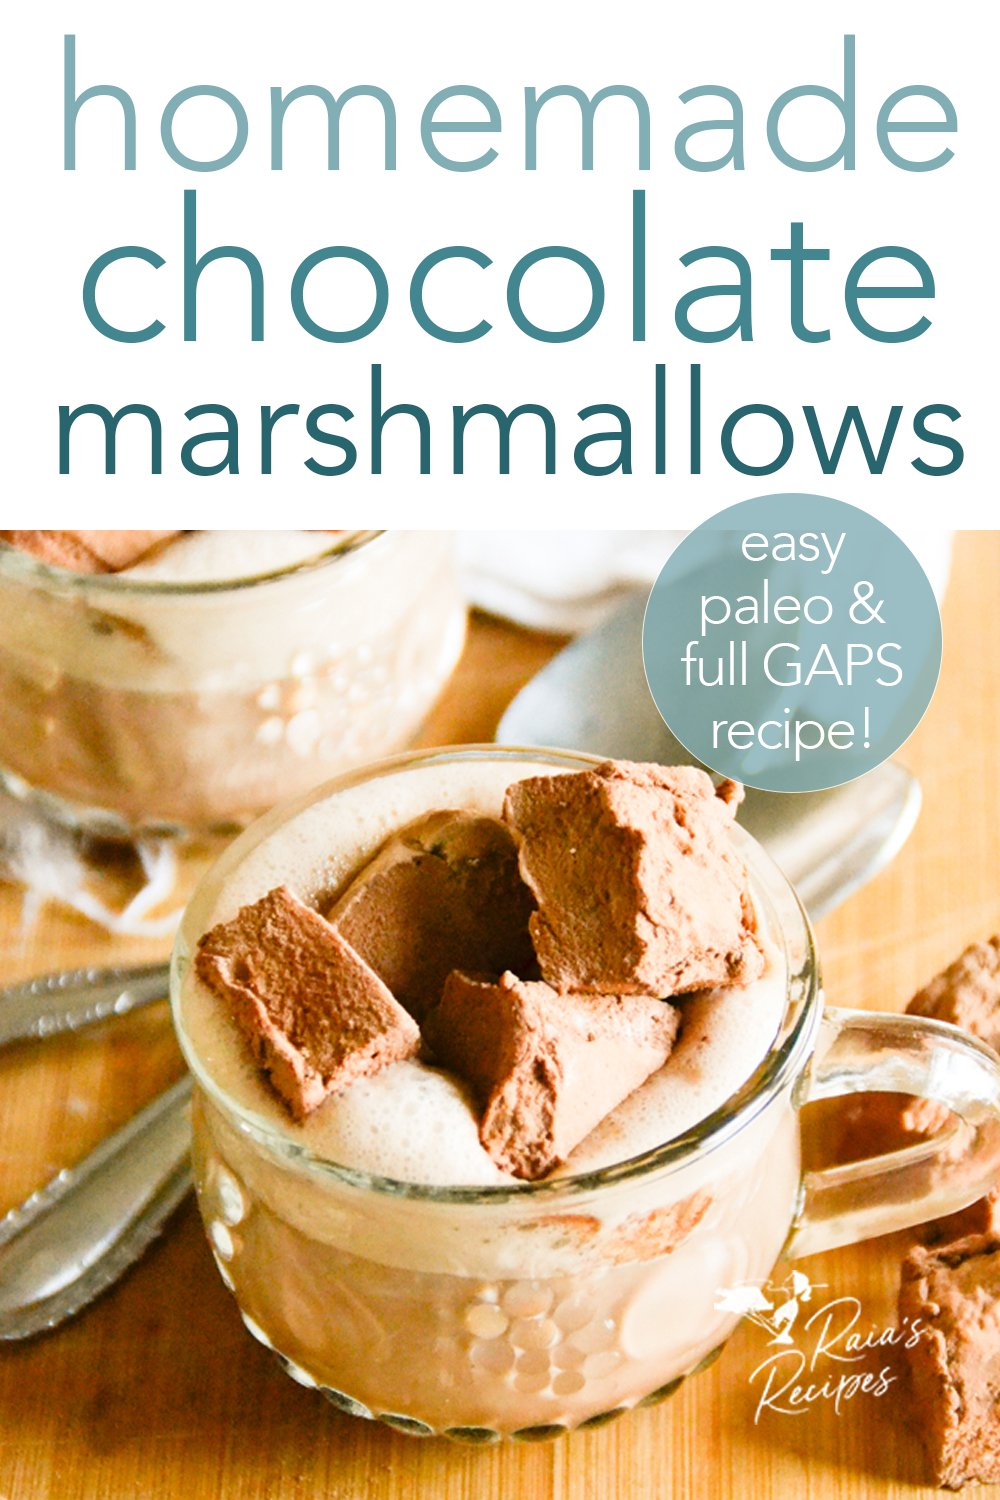 Homemade chocolate marshmallows from raiasrecipes.com #paleo #fullgapsdiet #chocolate #marshmallows